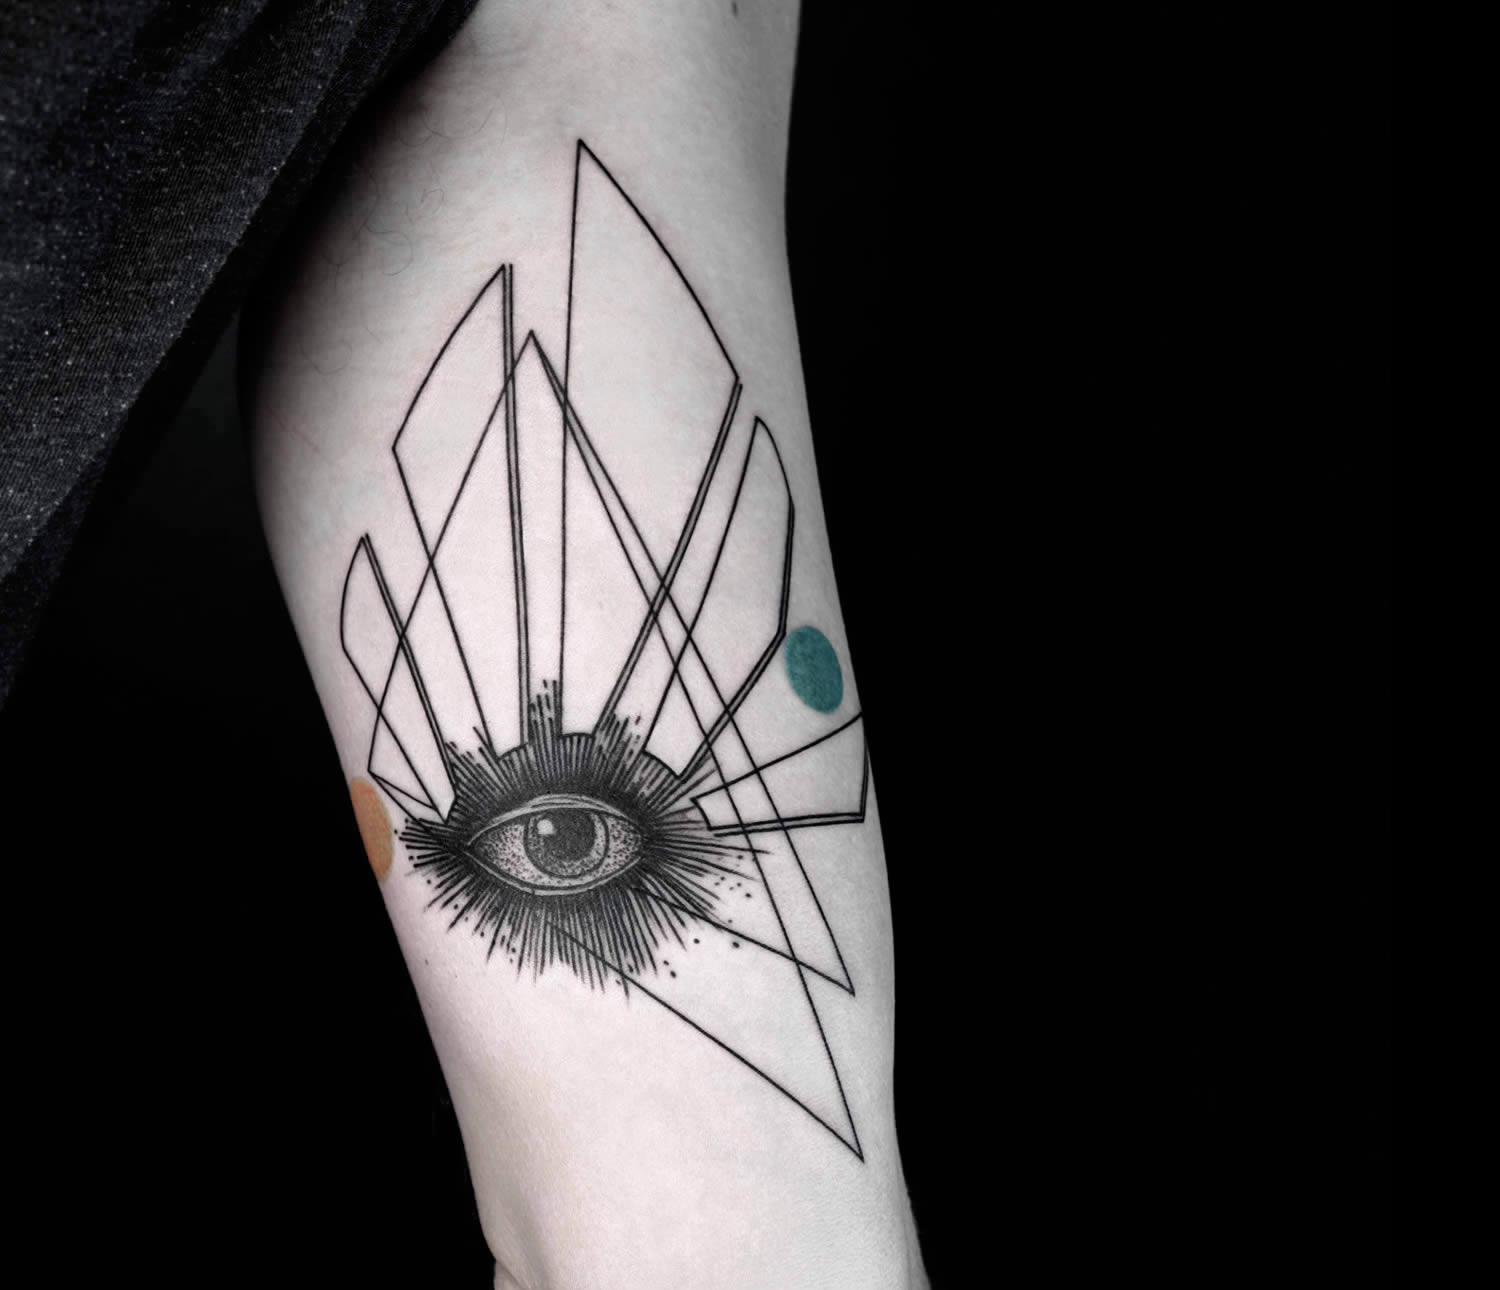 eye tattoo by Okan Uckun